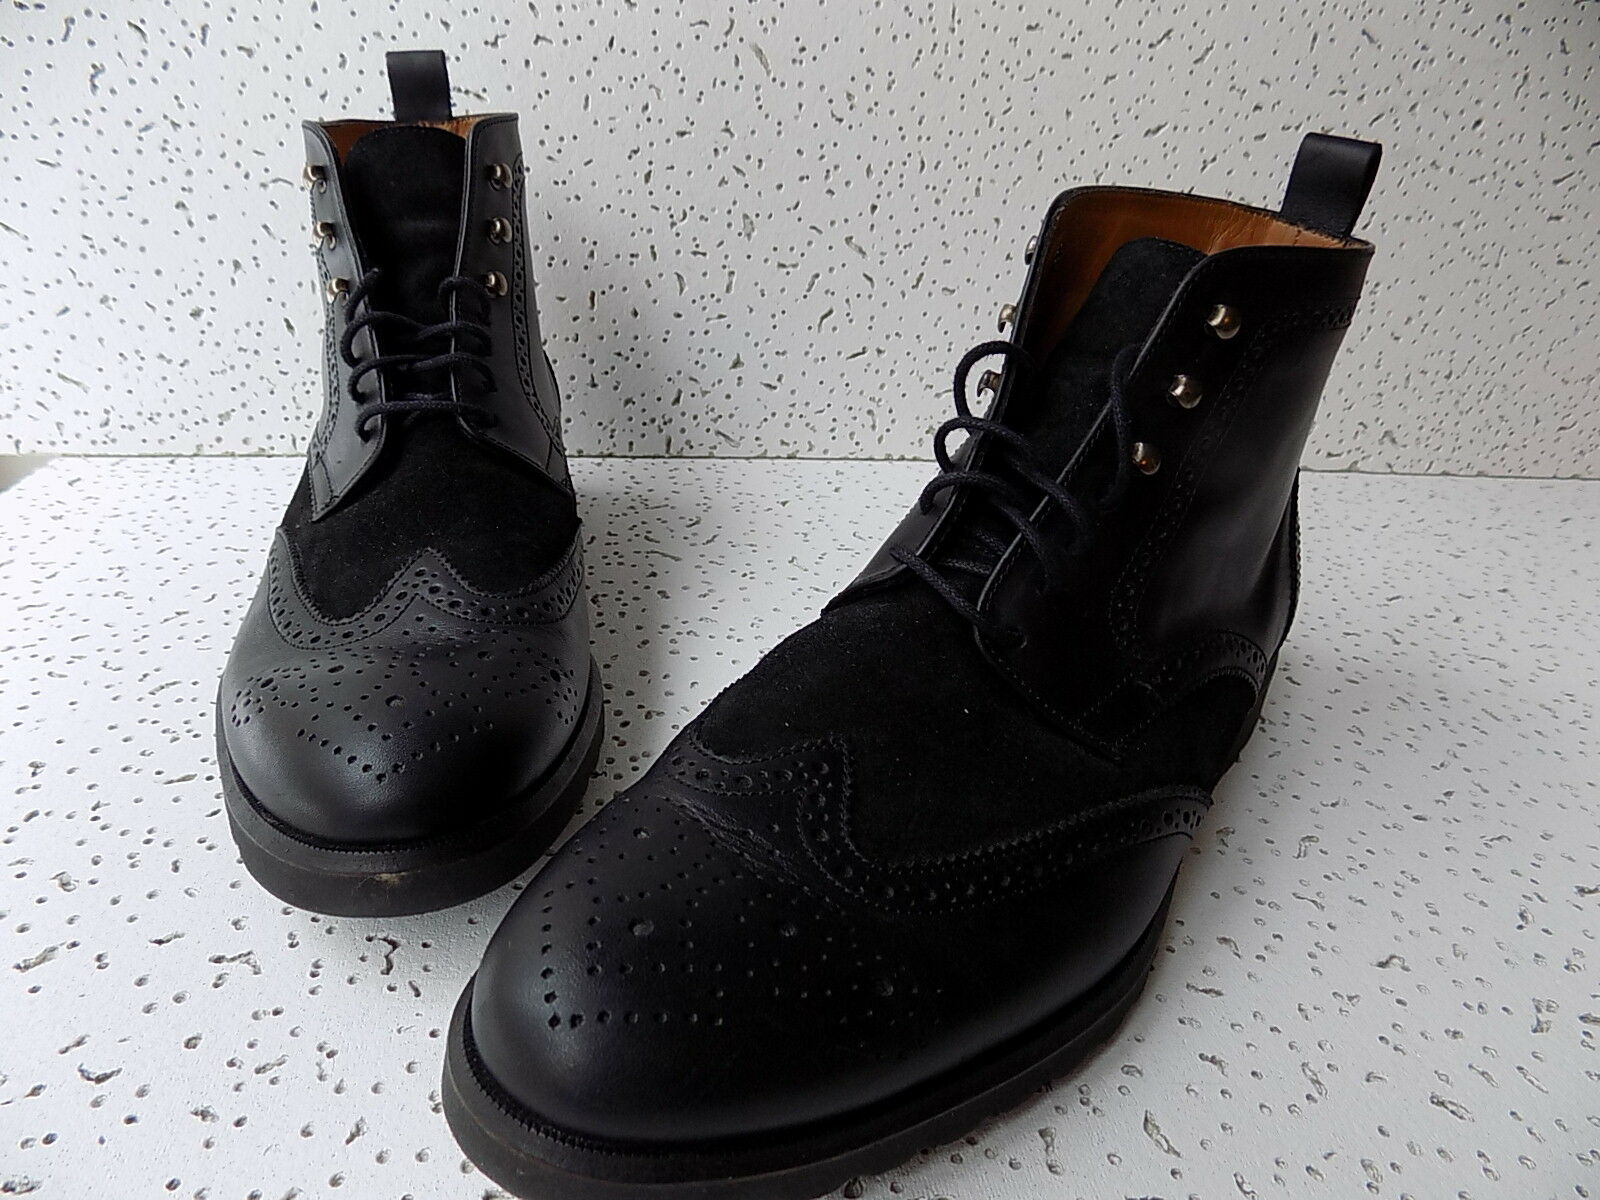 Rooster dress League Military Brogue dress Rooster boots, calf leather & suede, US 9.5, EU 42 19b736